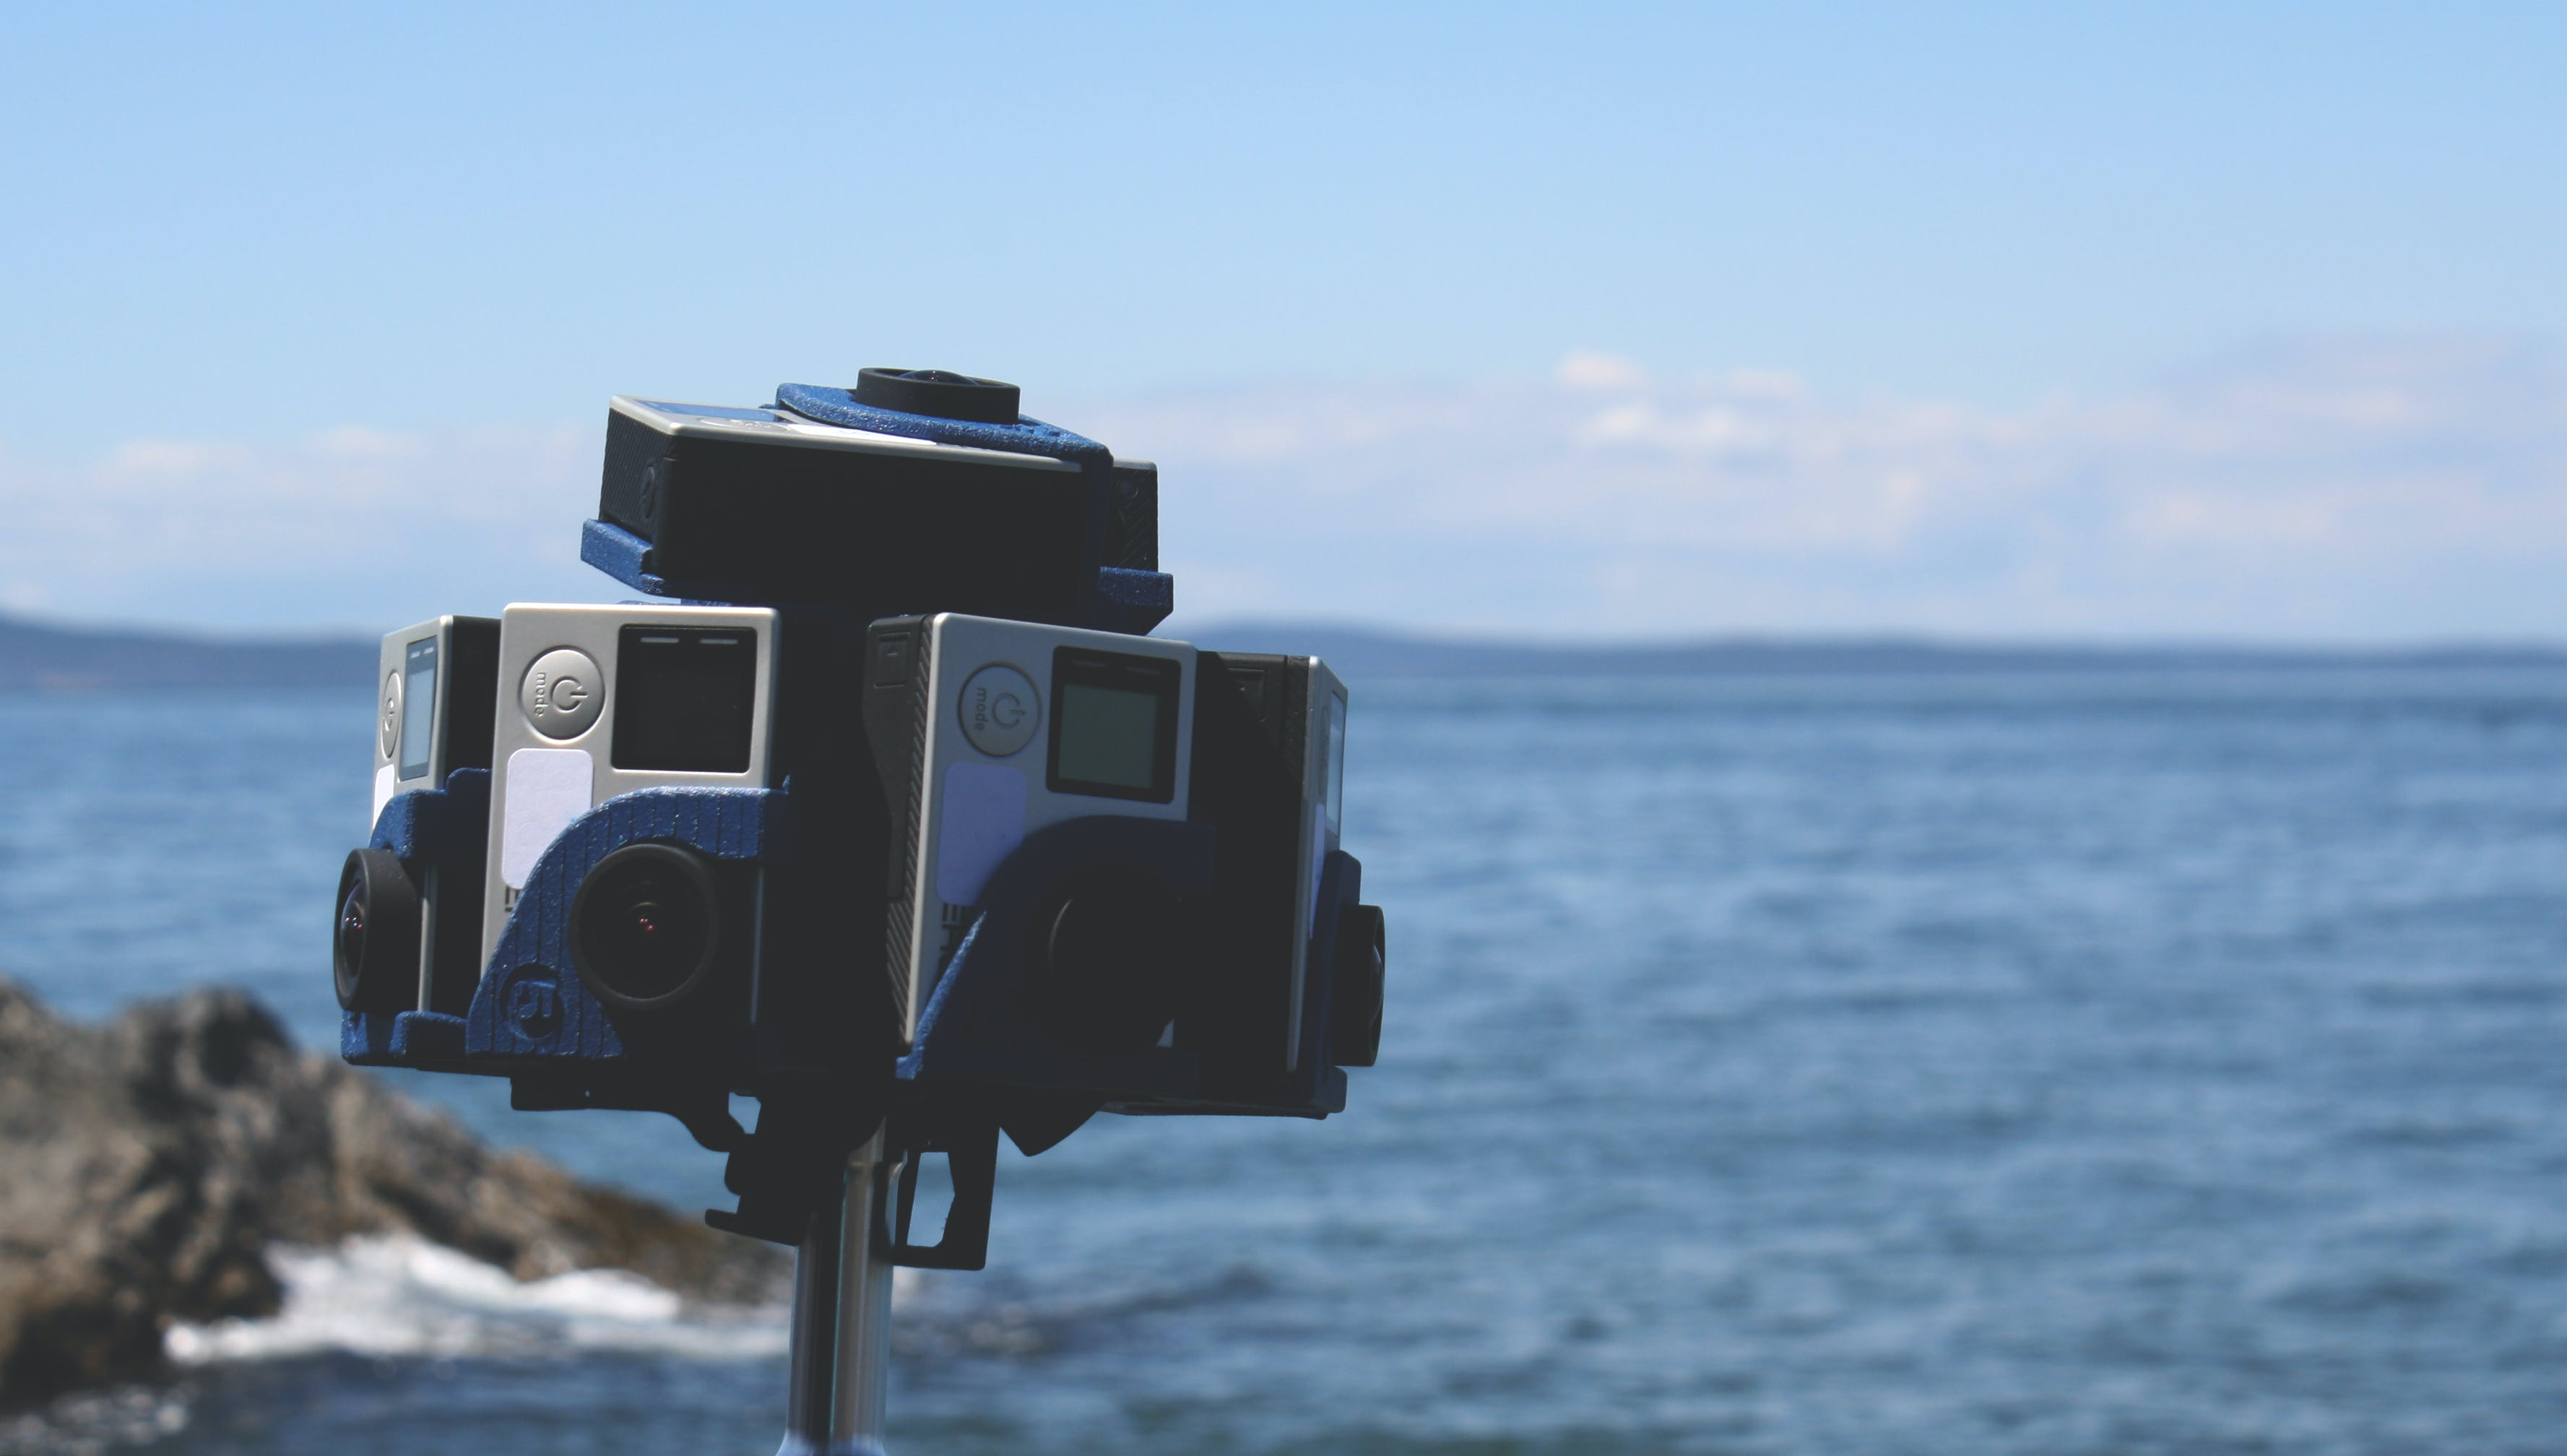 Free stock photo of cameras, gopro, mount, vr